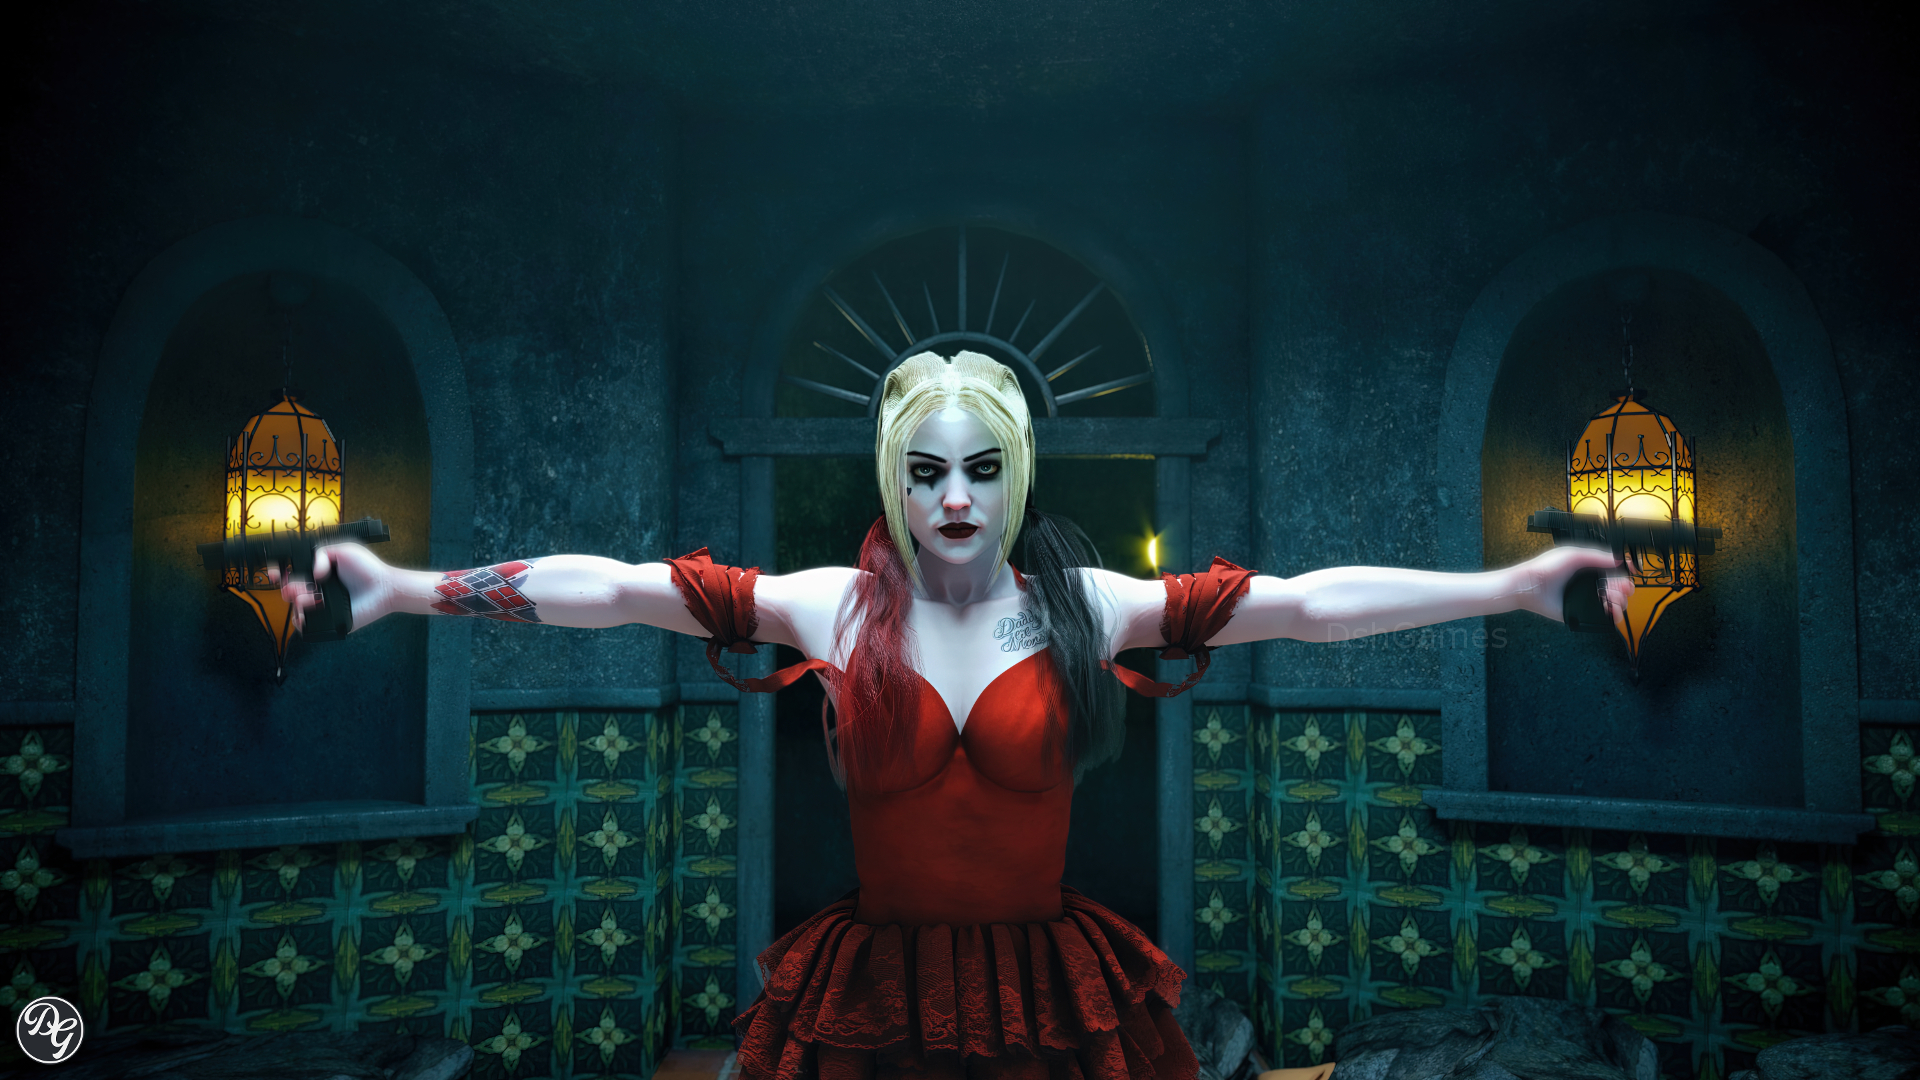 harley quinn in suicide squad 2